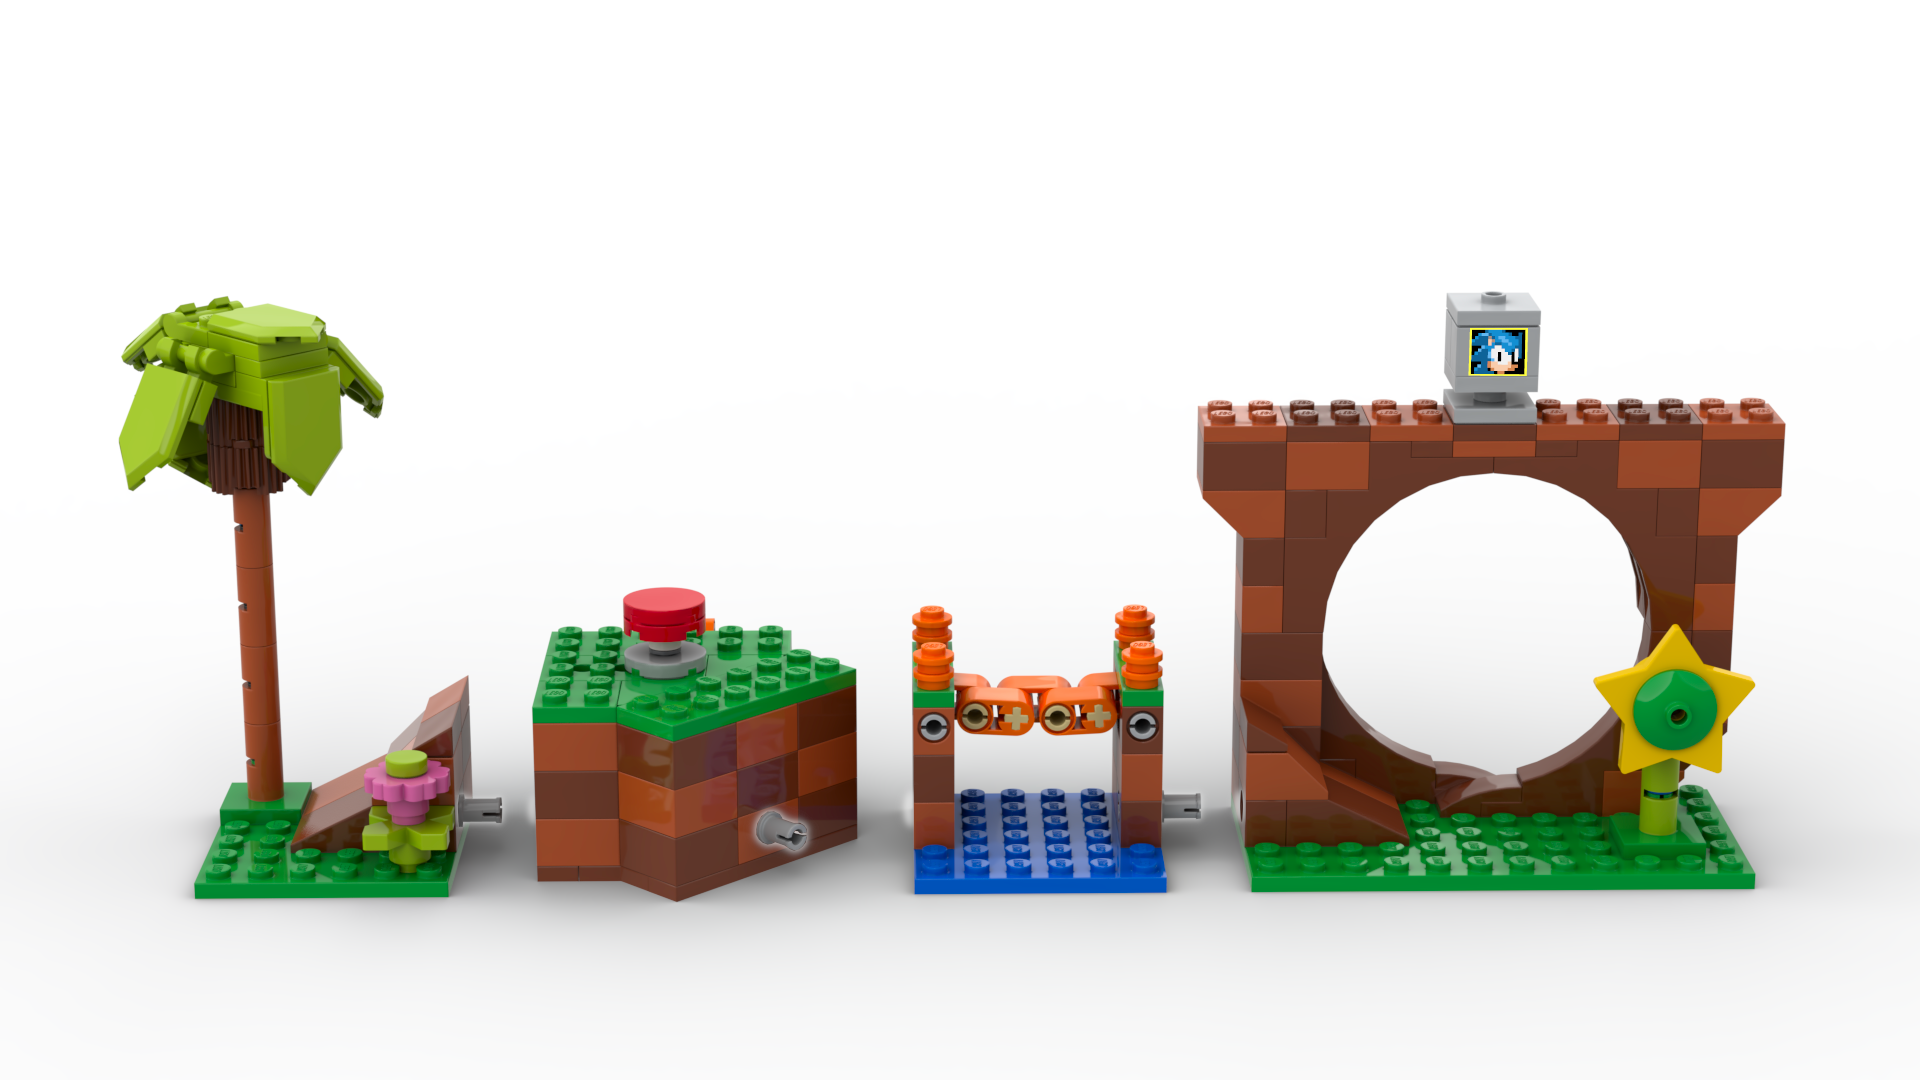 A Green Hills Zone inspired set, complete with Loop, tree, and Ring Box.